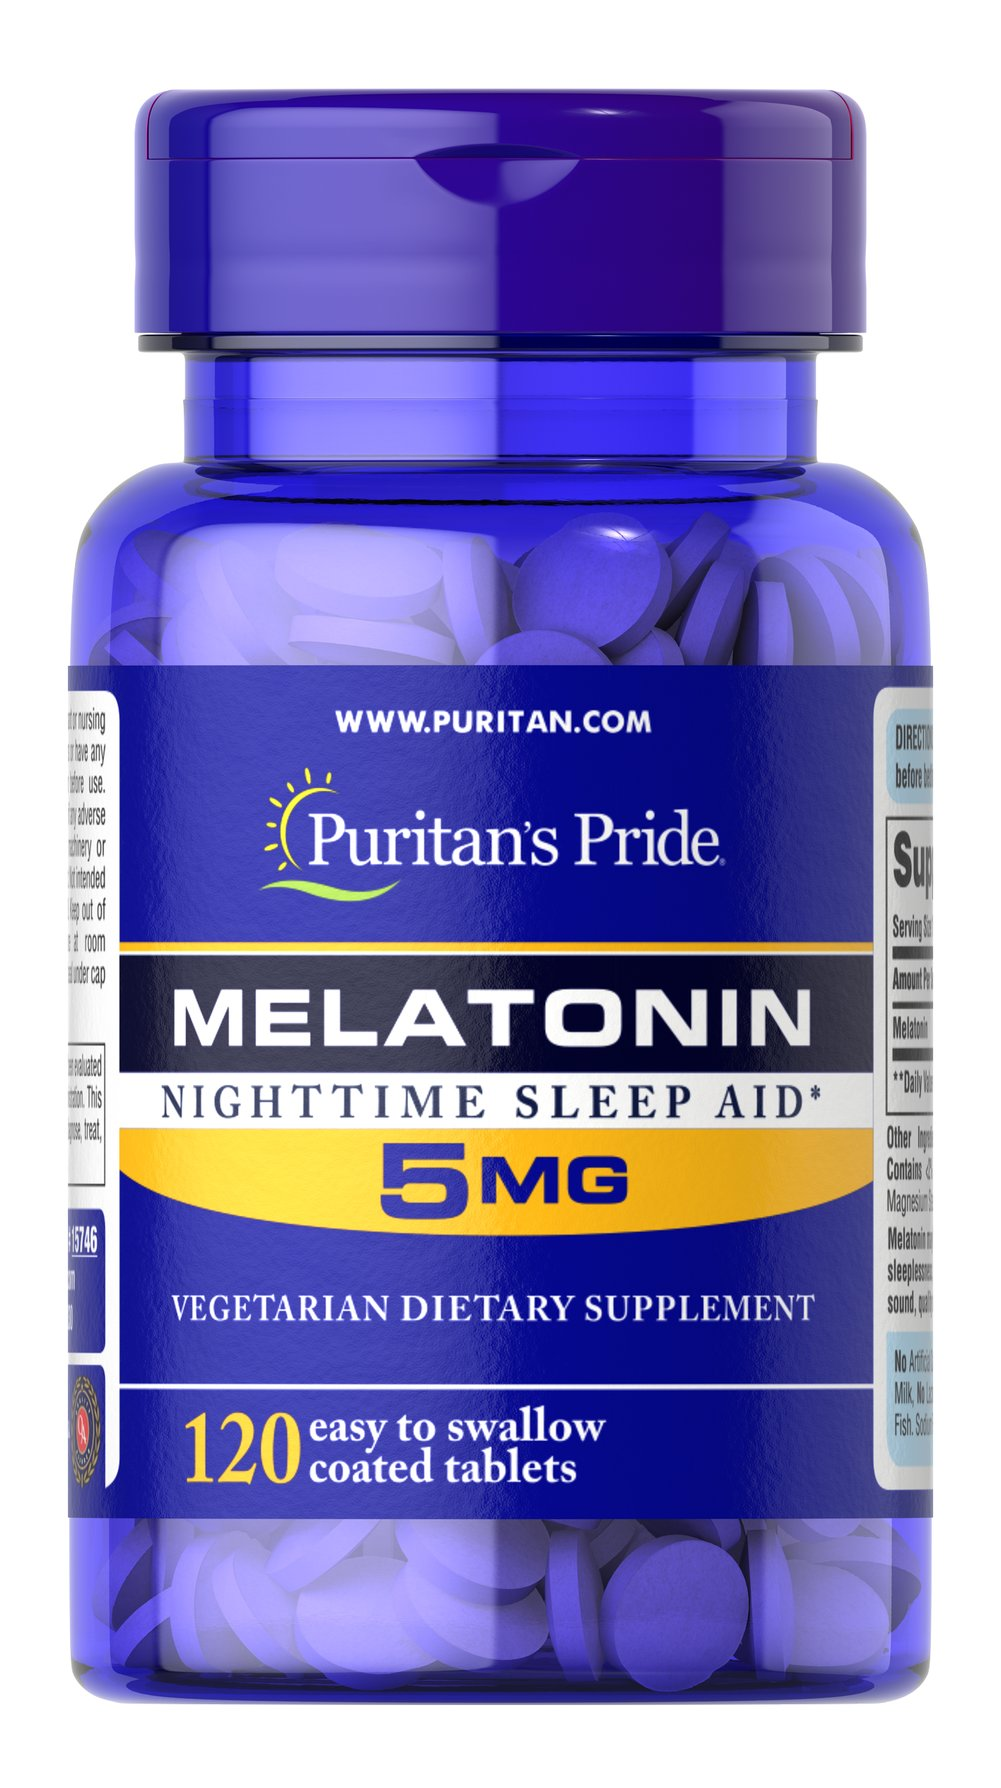 Melatonin 5 mg <p>Sometimes it's hard to unwind after a long day. That's when it's time for Melatonin, a hormone naturally produced in the body that is closely involved in the natural sleep cycle.** It's a terrific choice if you experience occasional sleeplessness or jet lag, or if you want to improve your quality of rest.**</p> 120 Tablets 5 mg $10.99